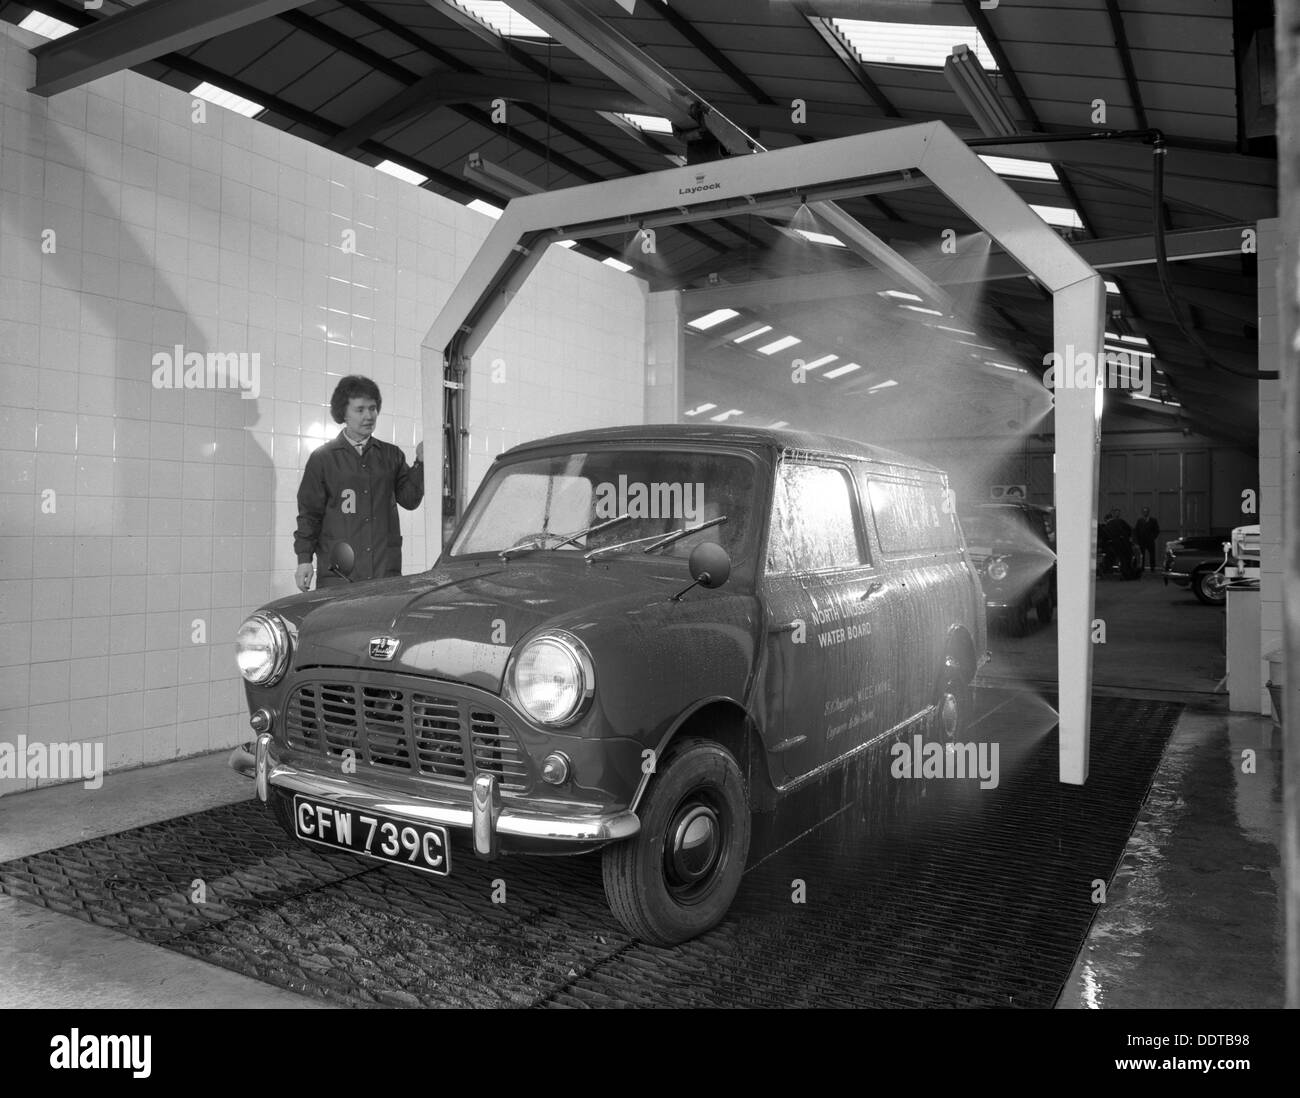 Mini van being washed in a car wash, Co-op garage, Scunthorpe, Lincolnshire, 1965.  Artist: Michael Walters Stock Photo